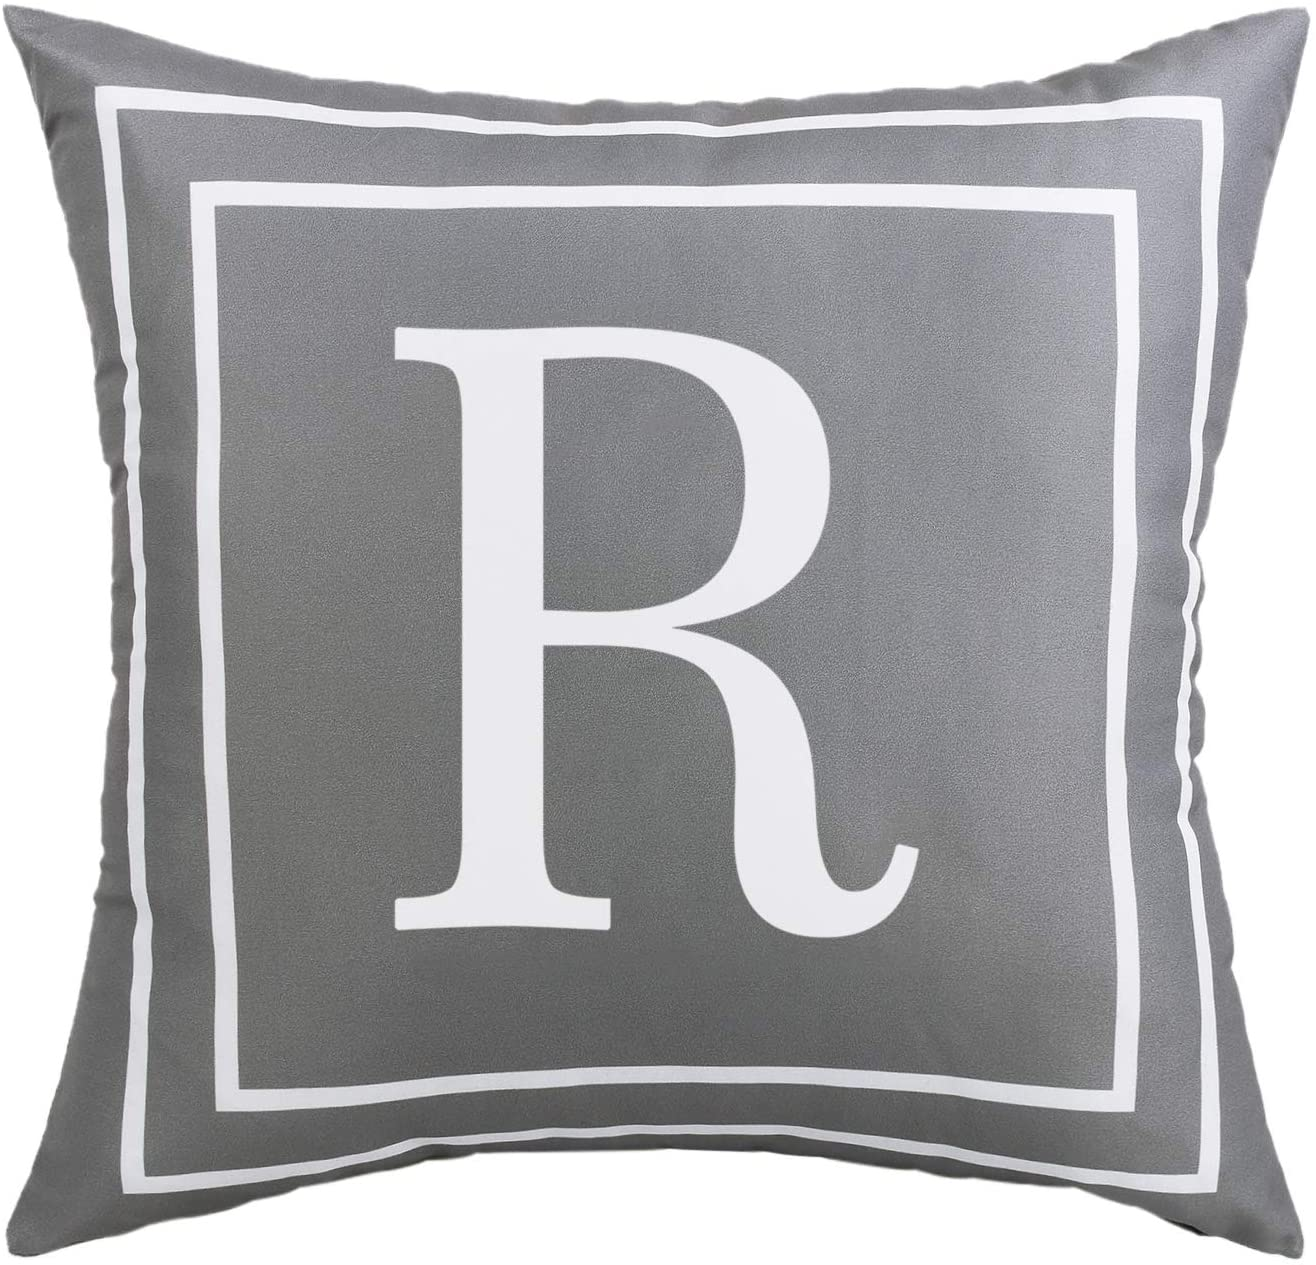 ASPMIZ Throw Pillow Covers English Alphabet R Pillow Covers, Initial Pillowcases Gray Letter Throw Pillow Covers, Decorative Cushion Cover for Bed Bedroom Couch Sofa (Gray, 18 x 18 inch)